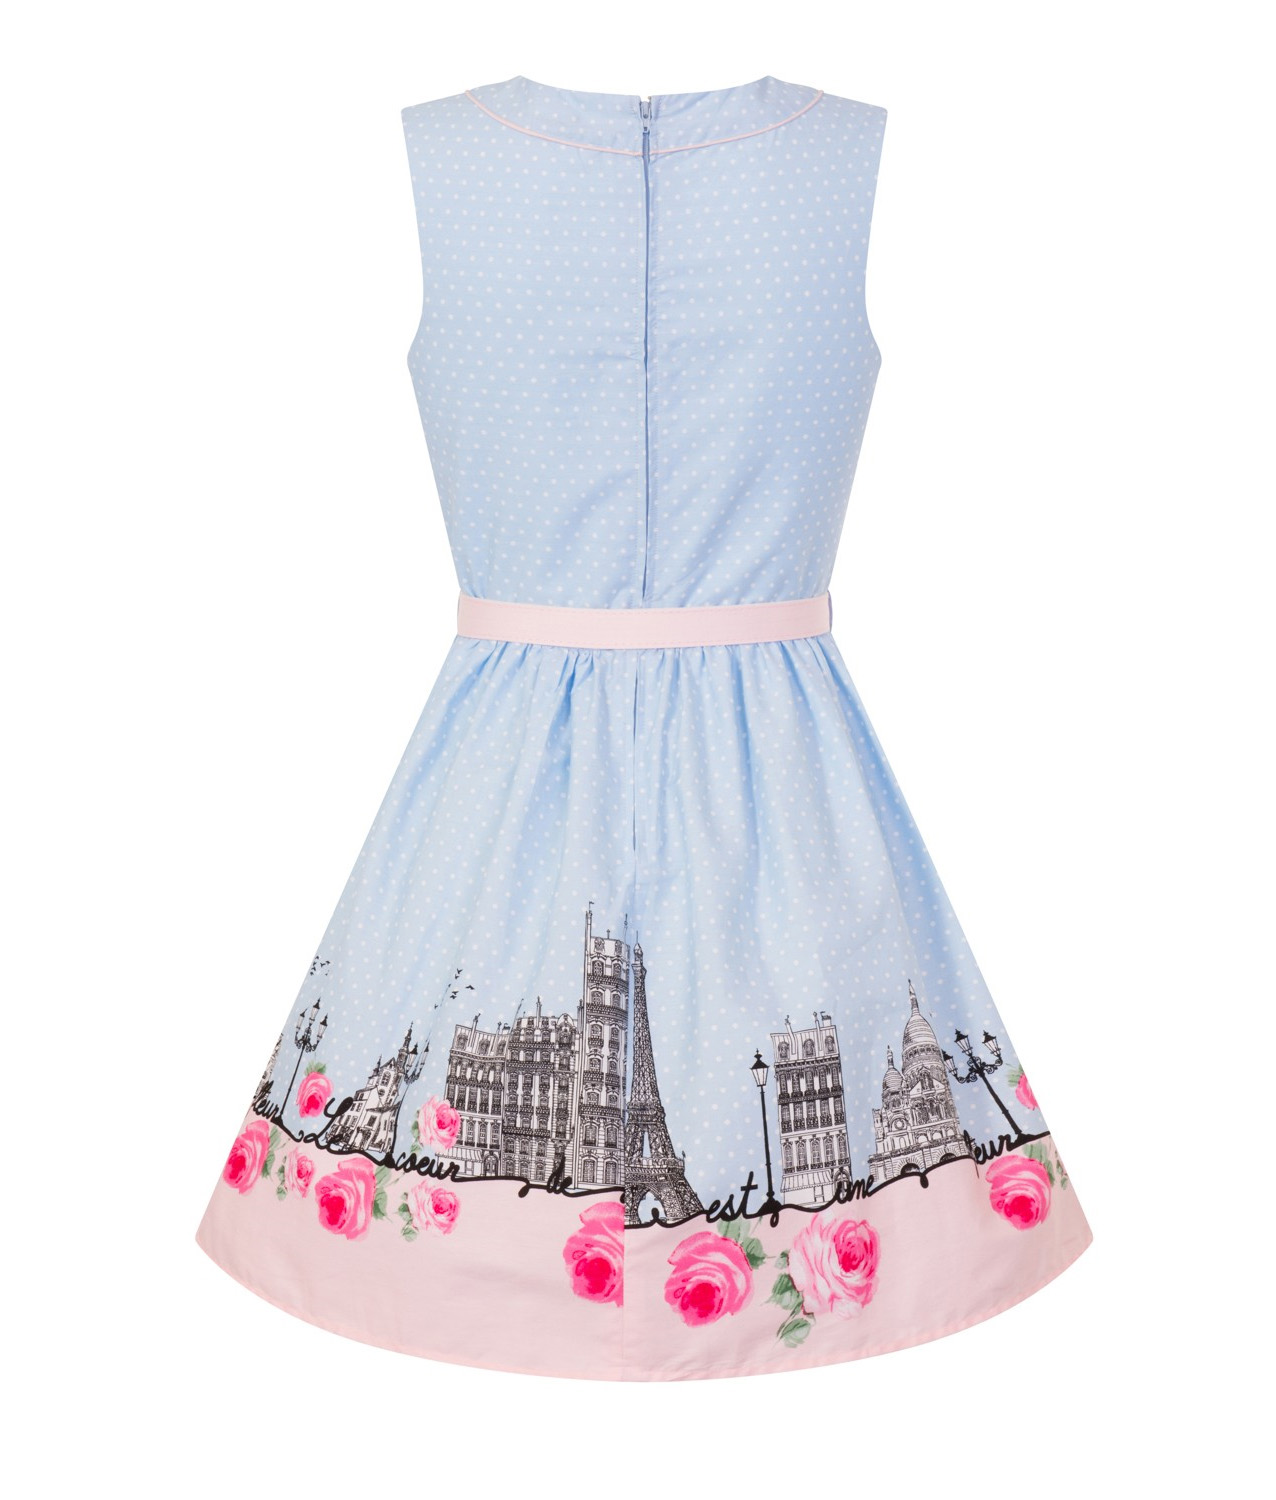 Hell-Bunny-50s-Vintage-Blue-Polka-Dot-PANAME-Mini-Dress-Paris-All-Sizes thumbnail 43